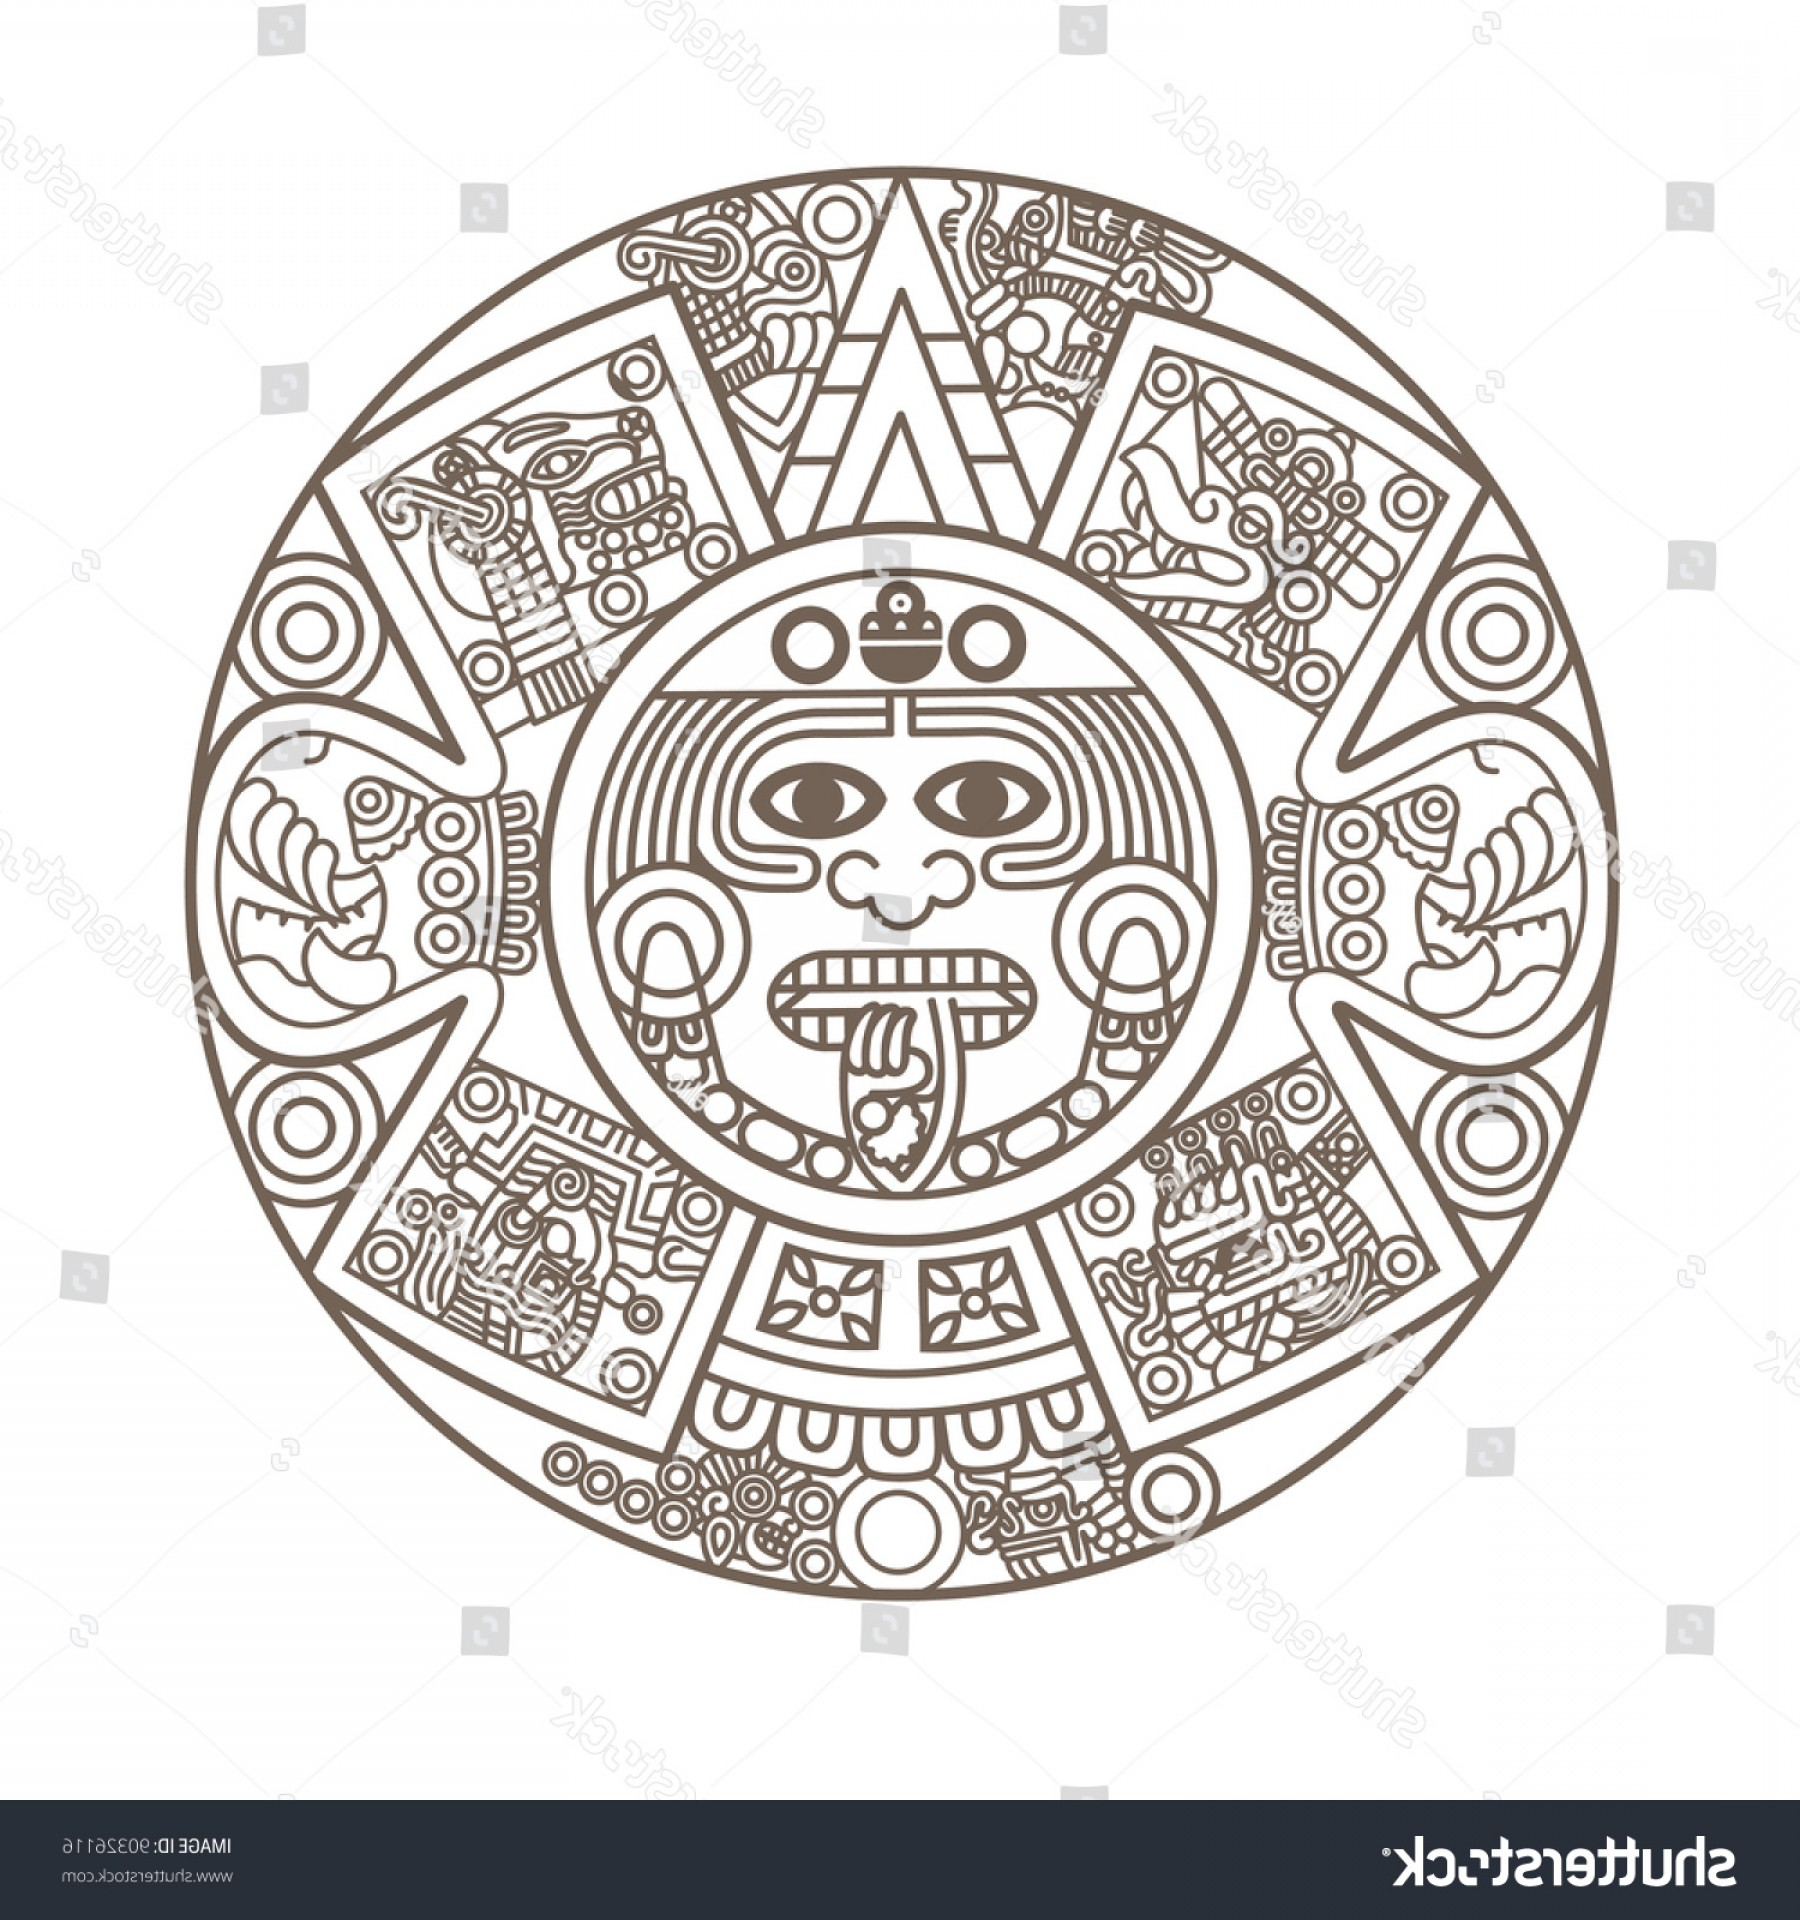 Mayan Sun Gold Vector Png: Stylized Aztec Calendar Gold Color Vector